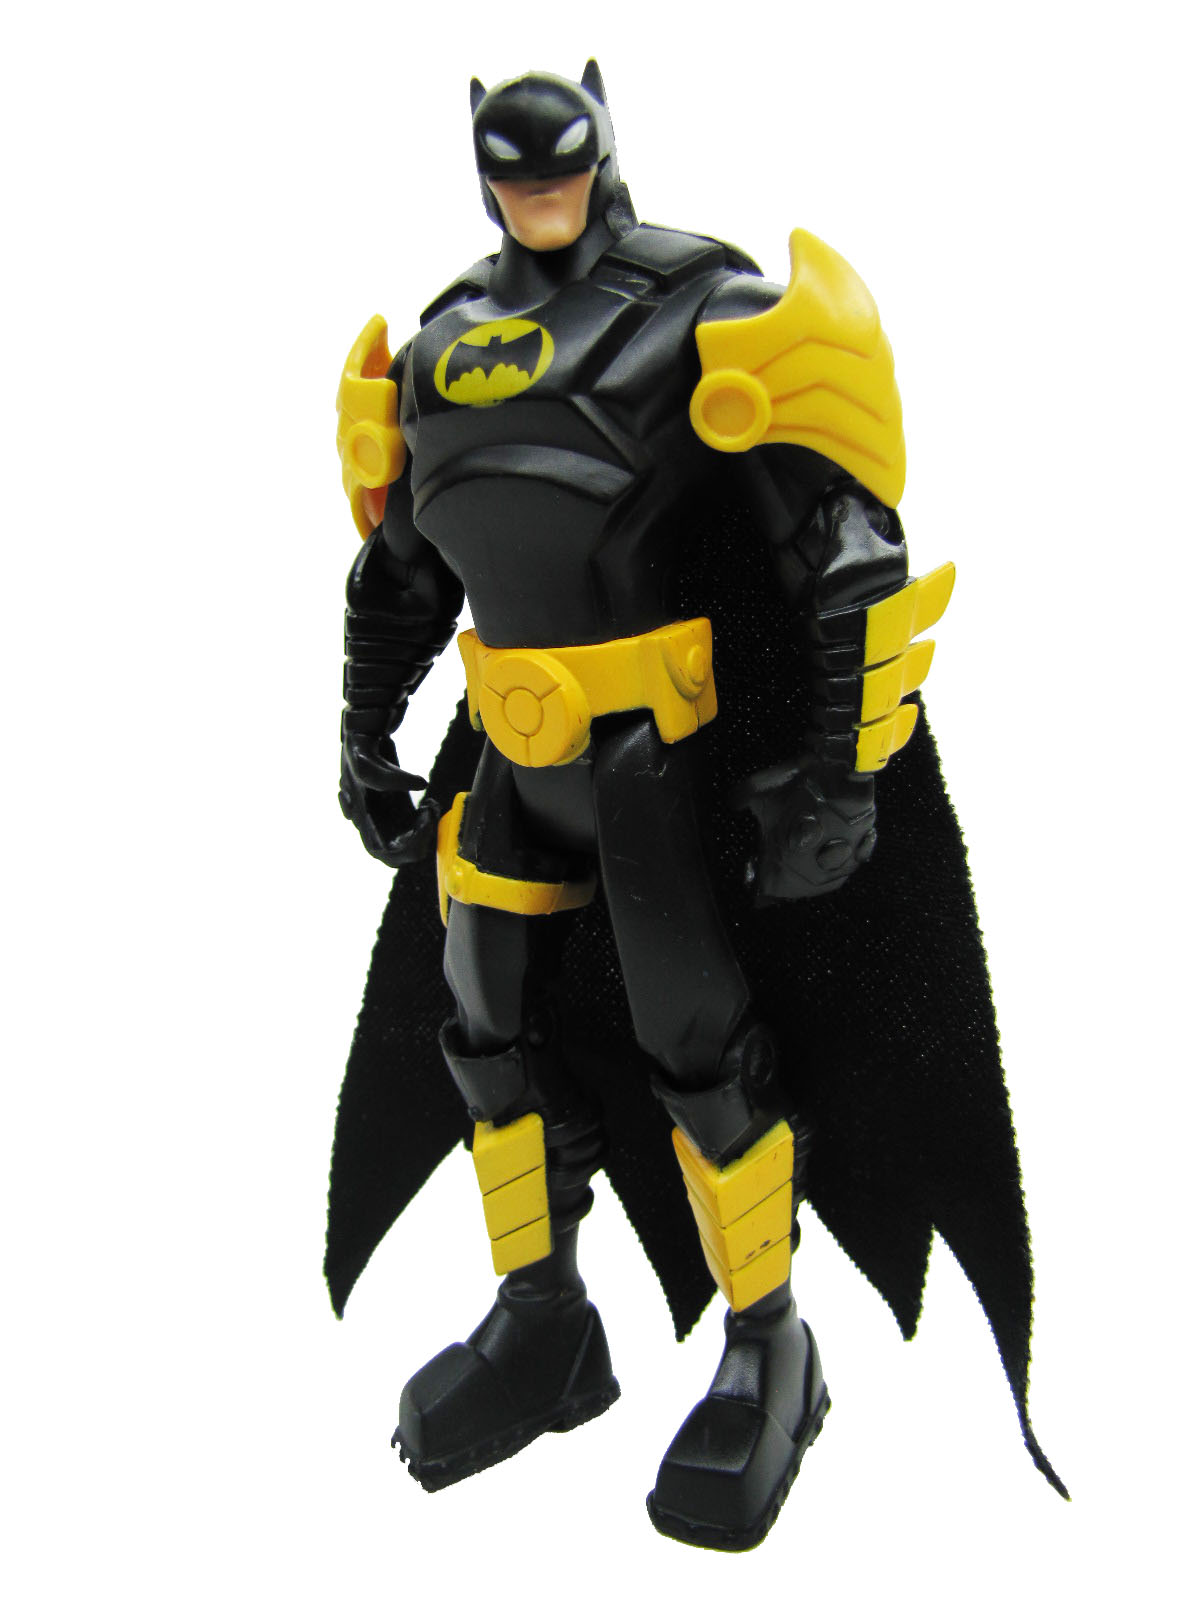 The Batman Criminal Capture Batman Complete